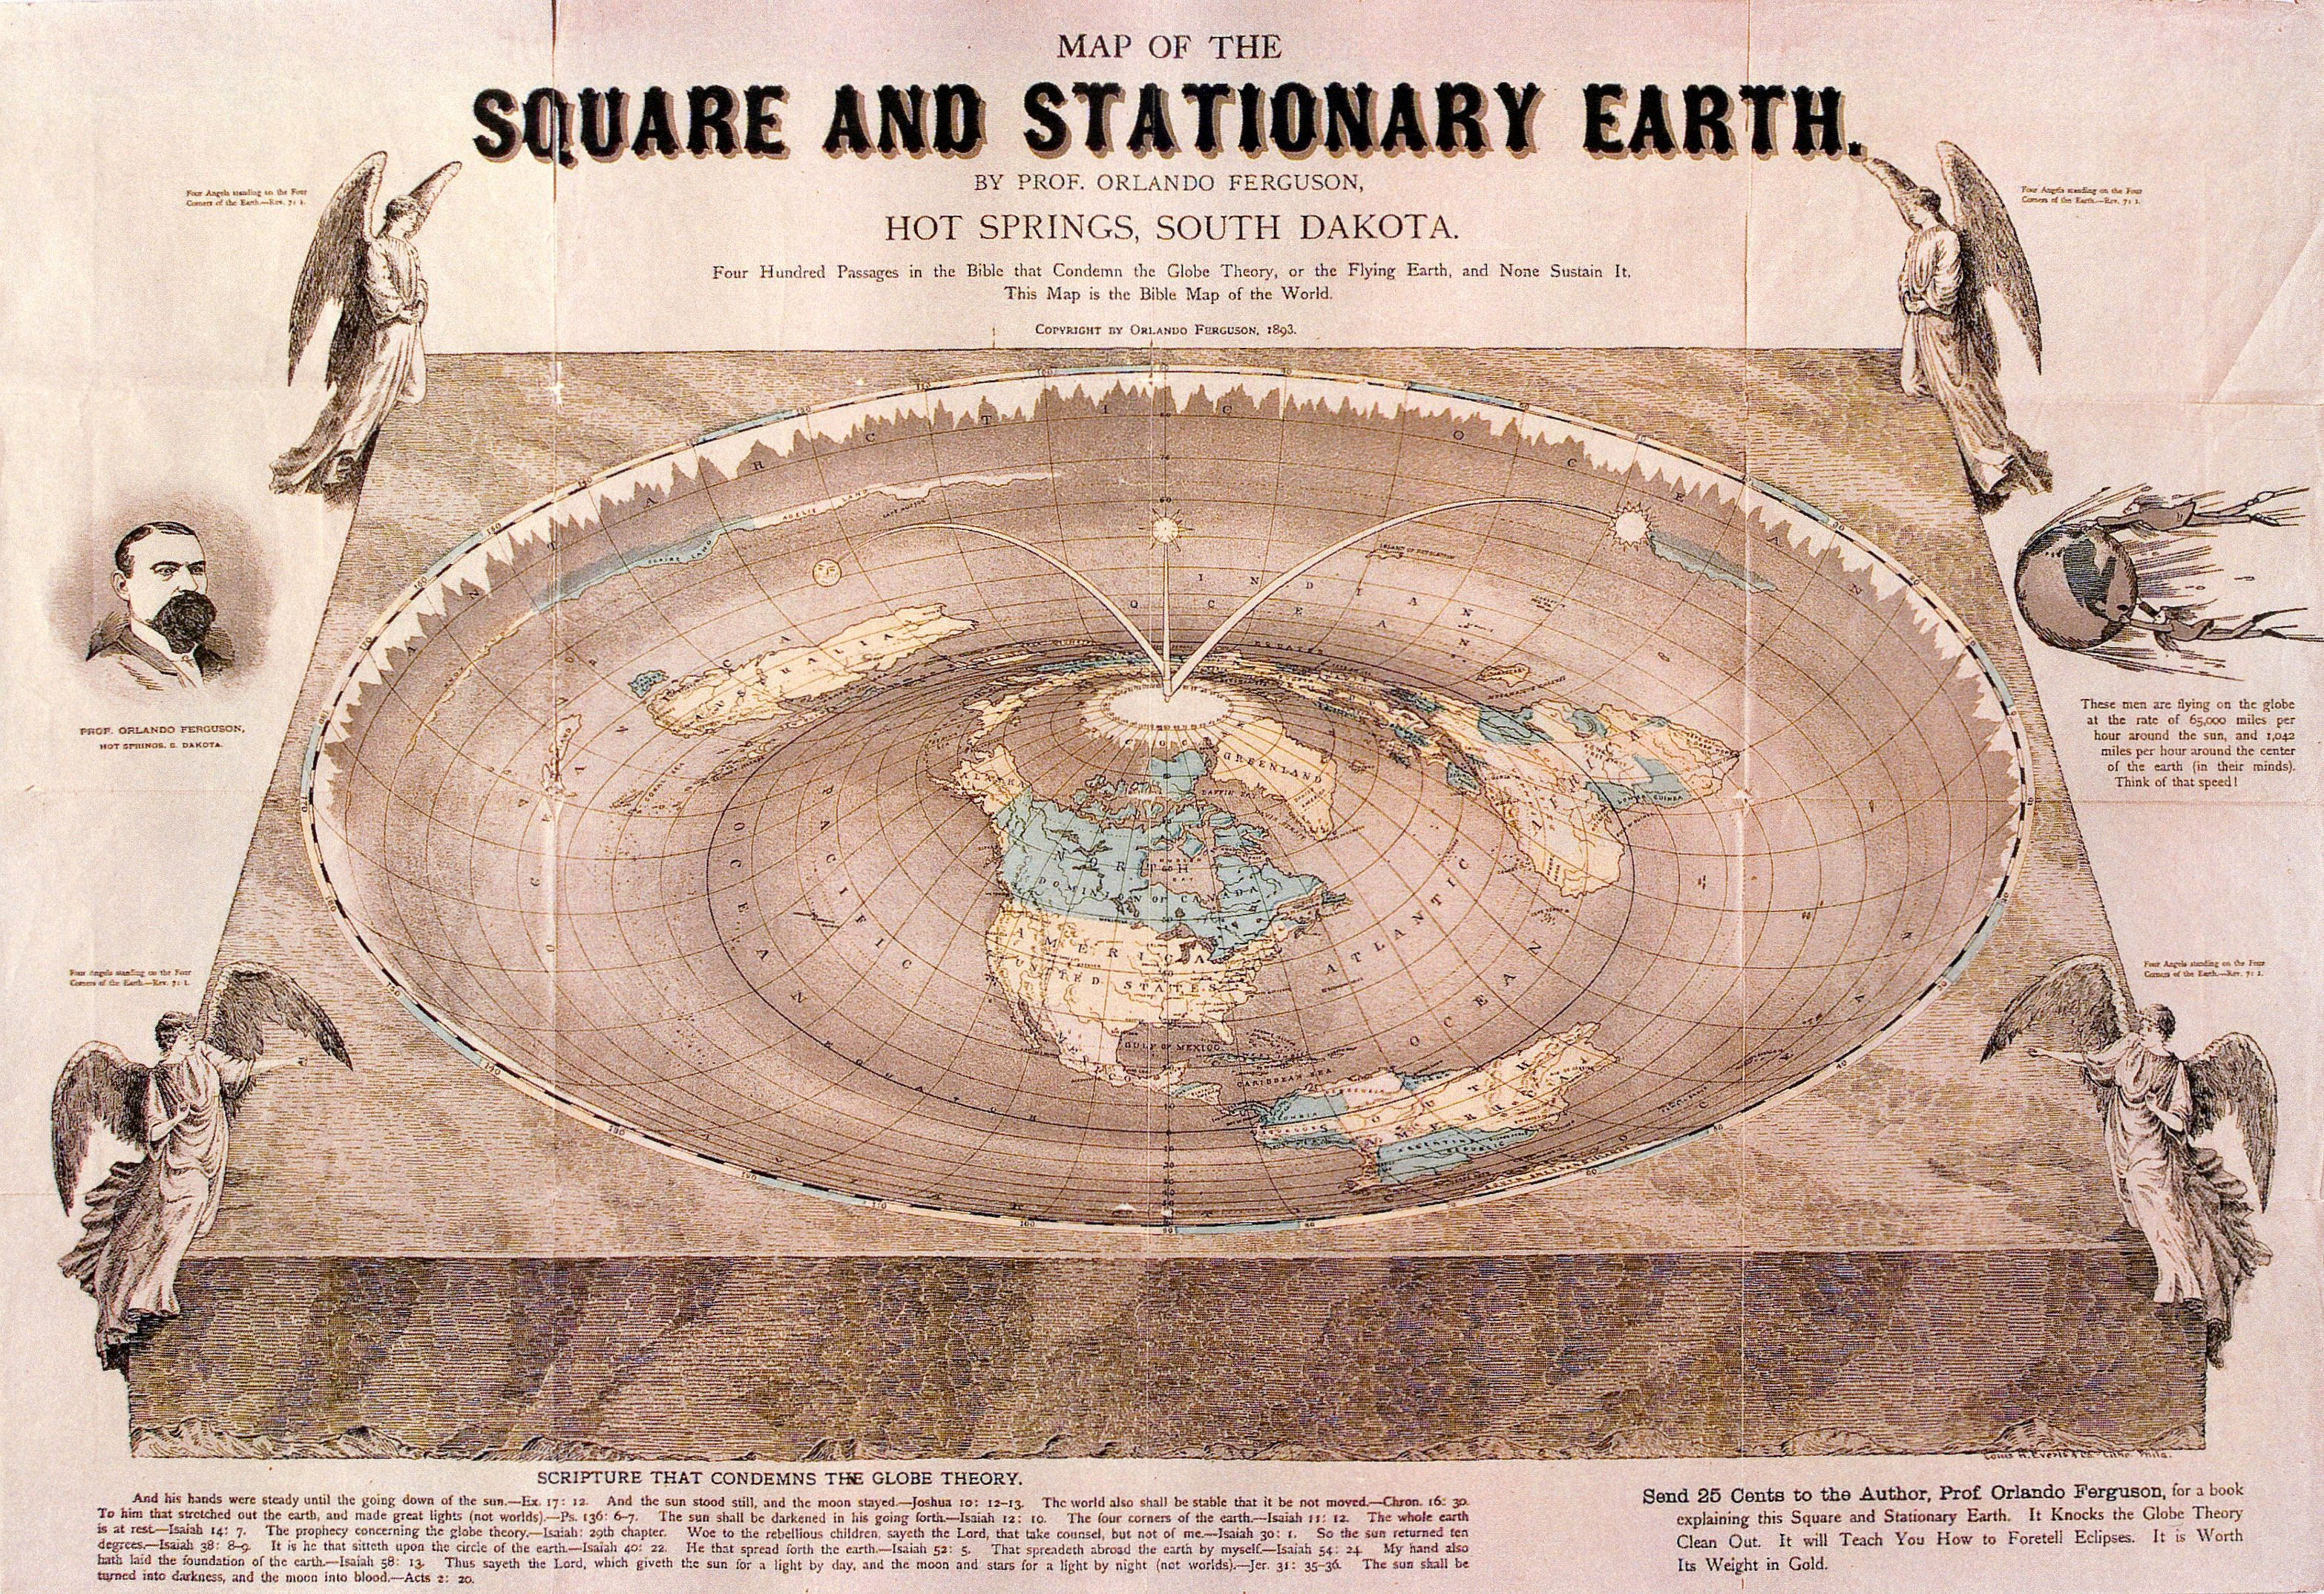 MAP OF THE SQUARE AND STATIONARY EARTH. Send 25 Cents to the Author, Prof.